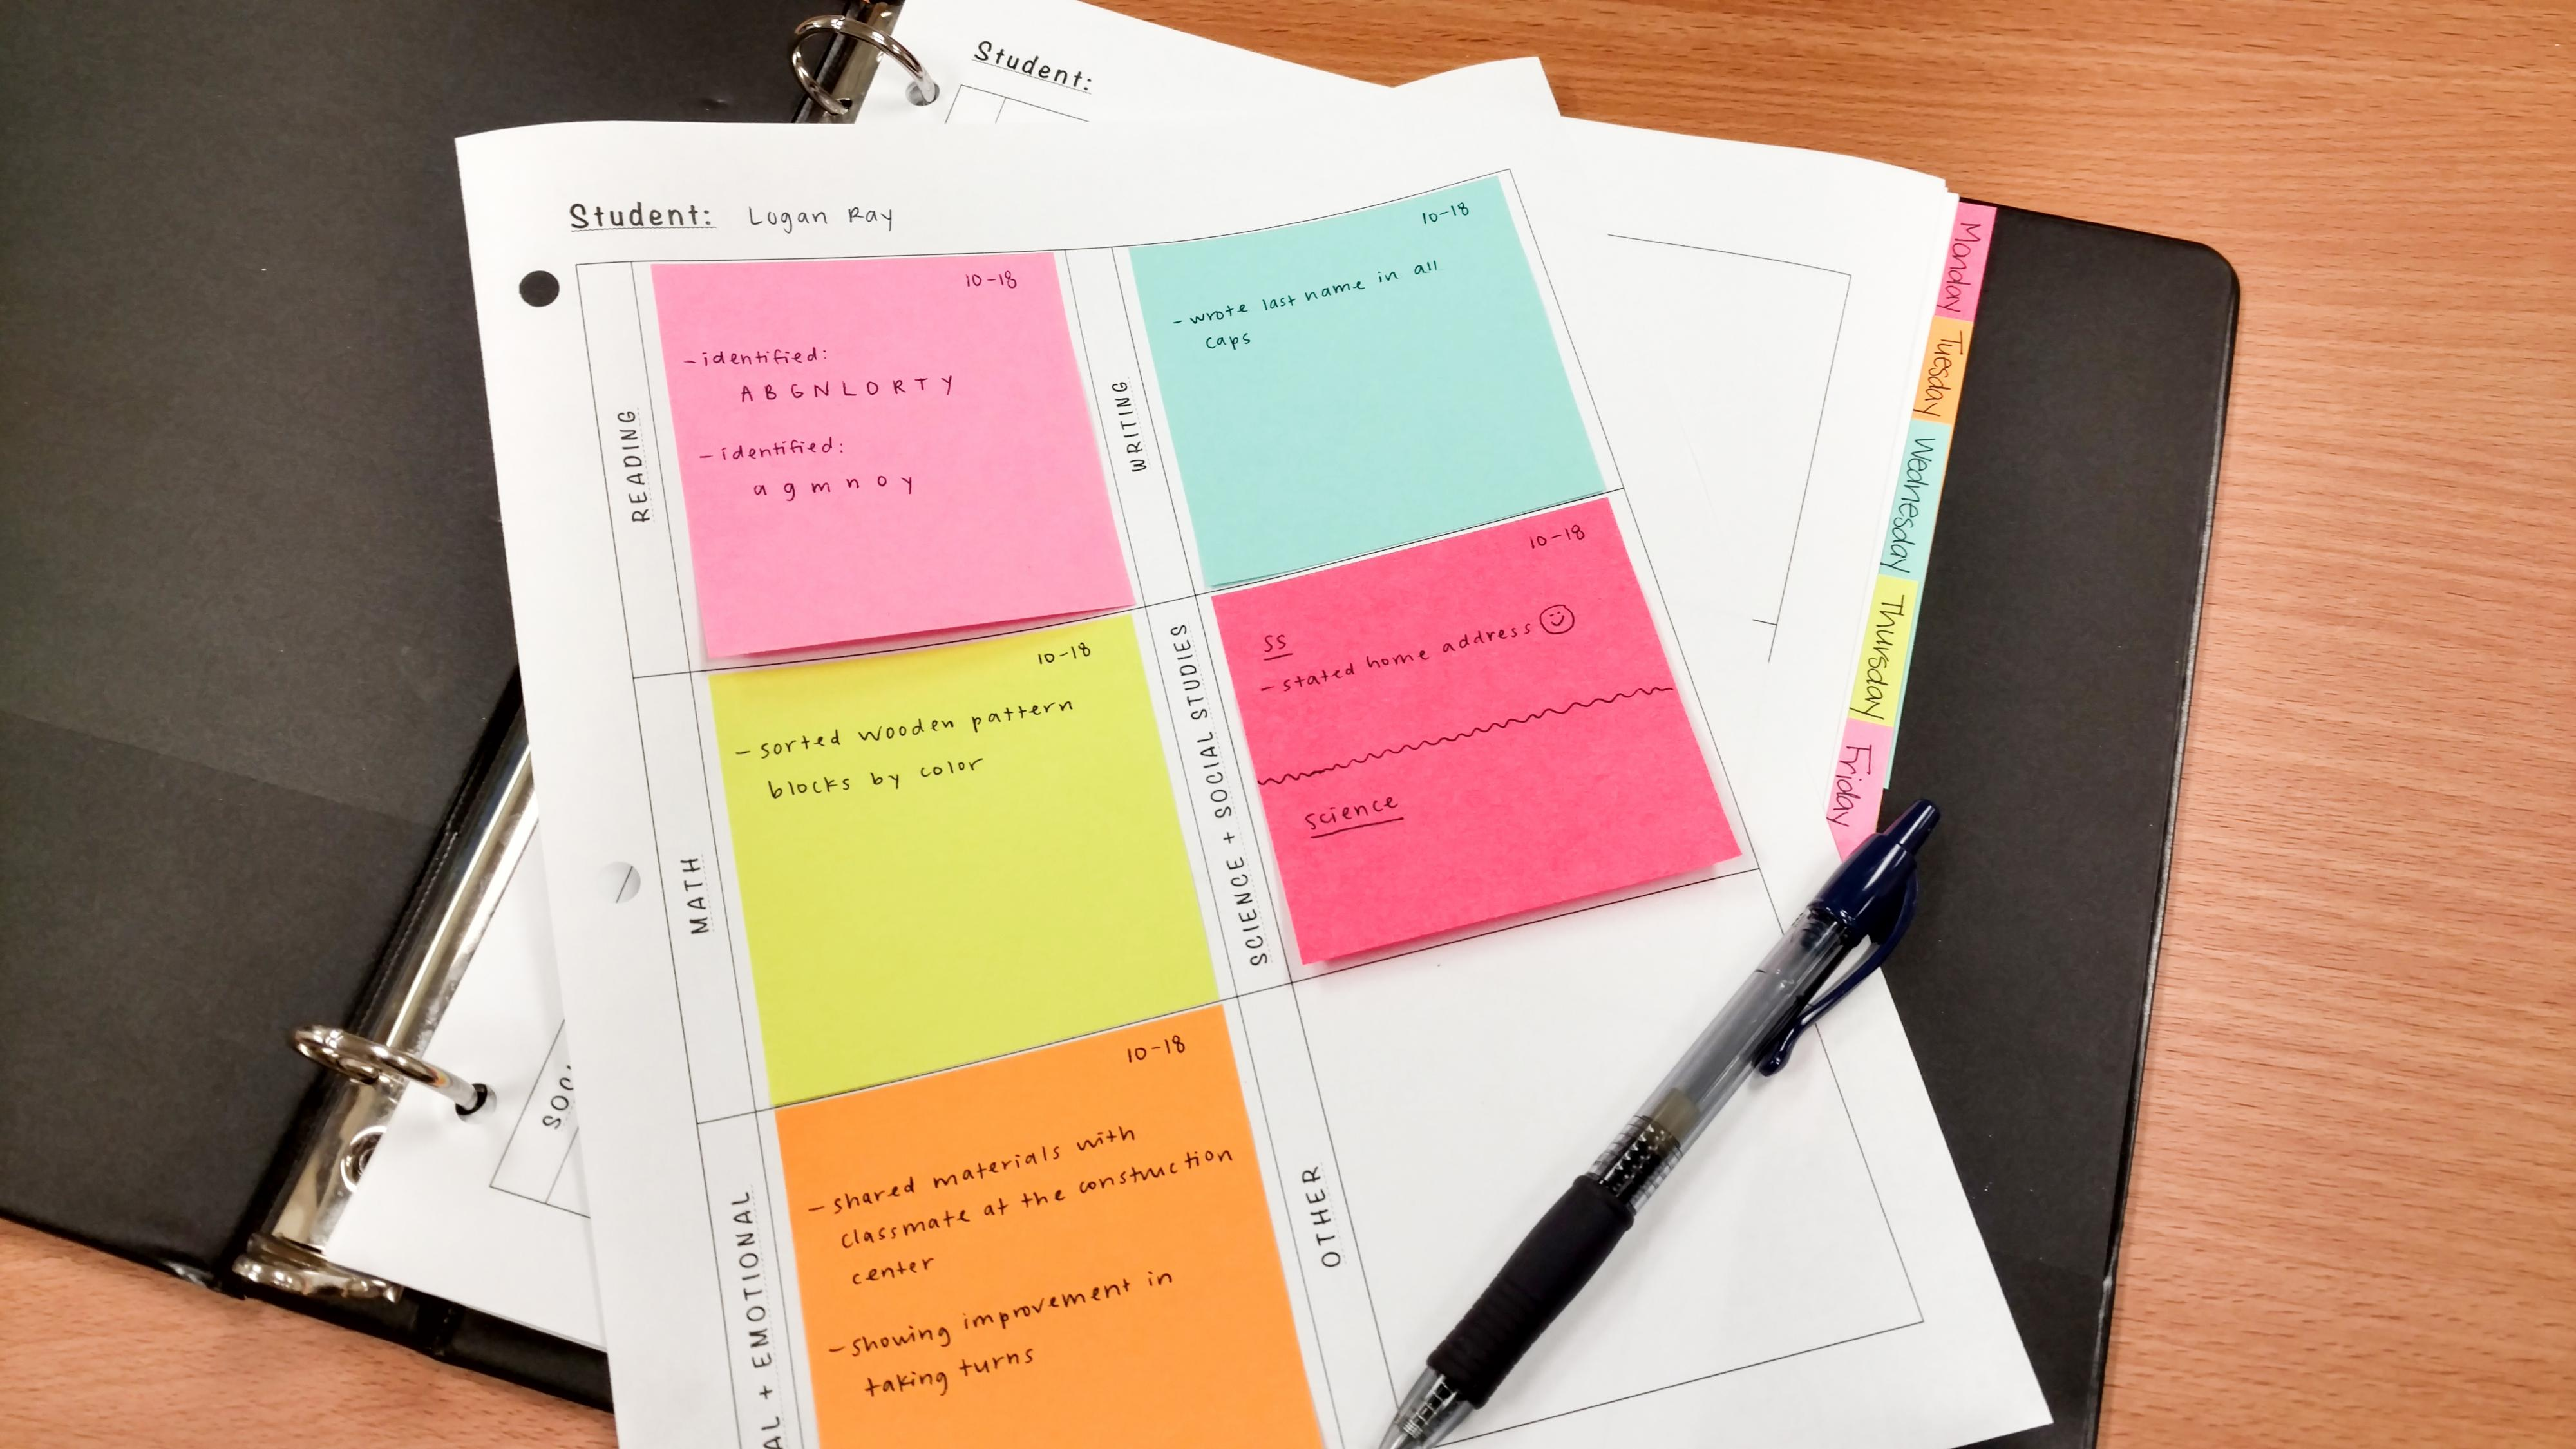 A binder with worksheets featuring written notes on post-it notes